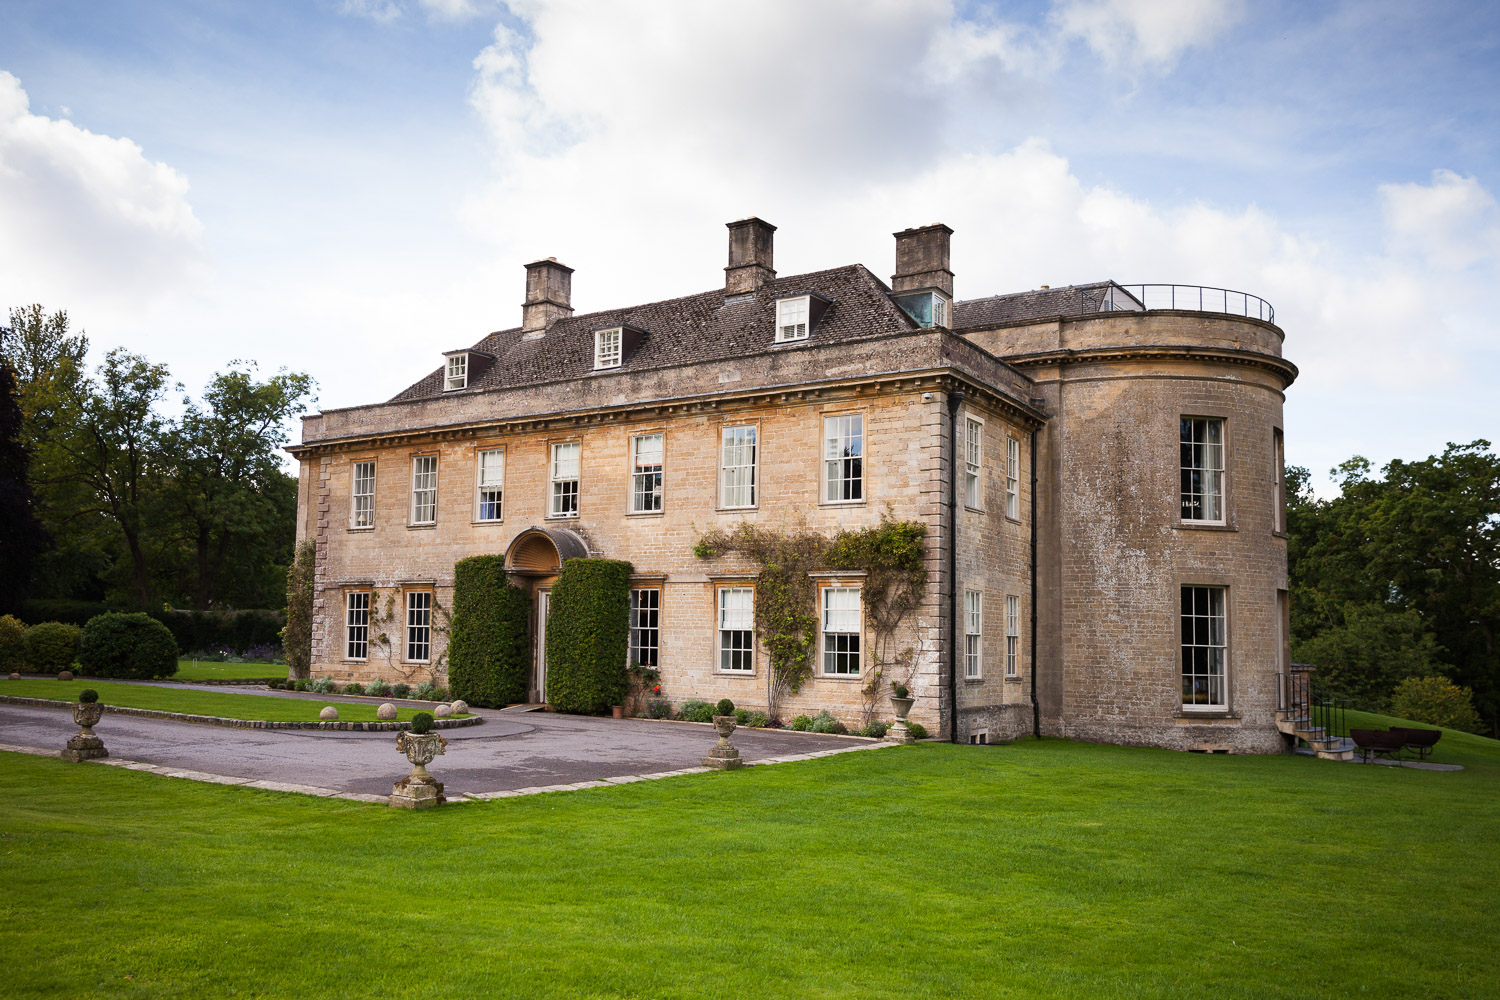 The outside of babington house decorated for a wedding